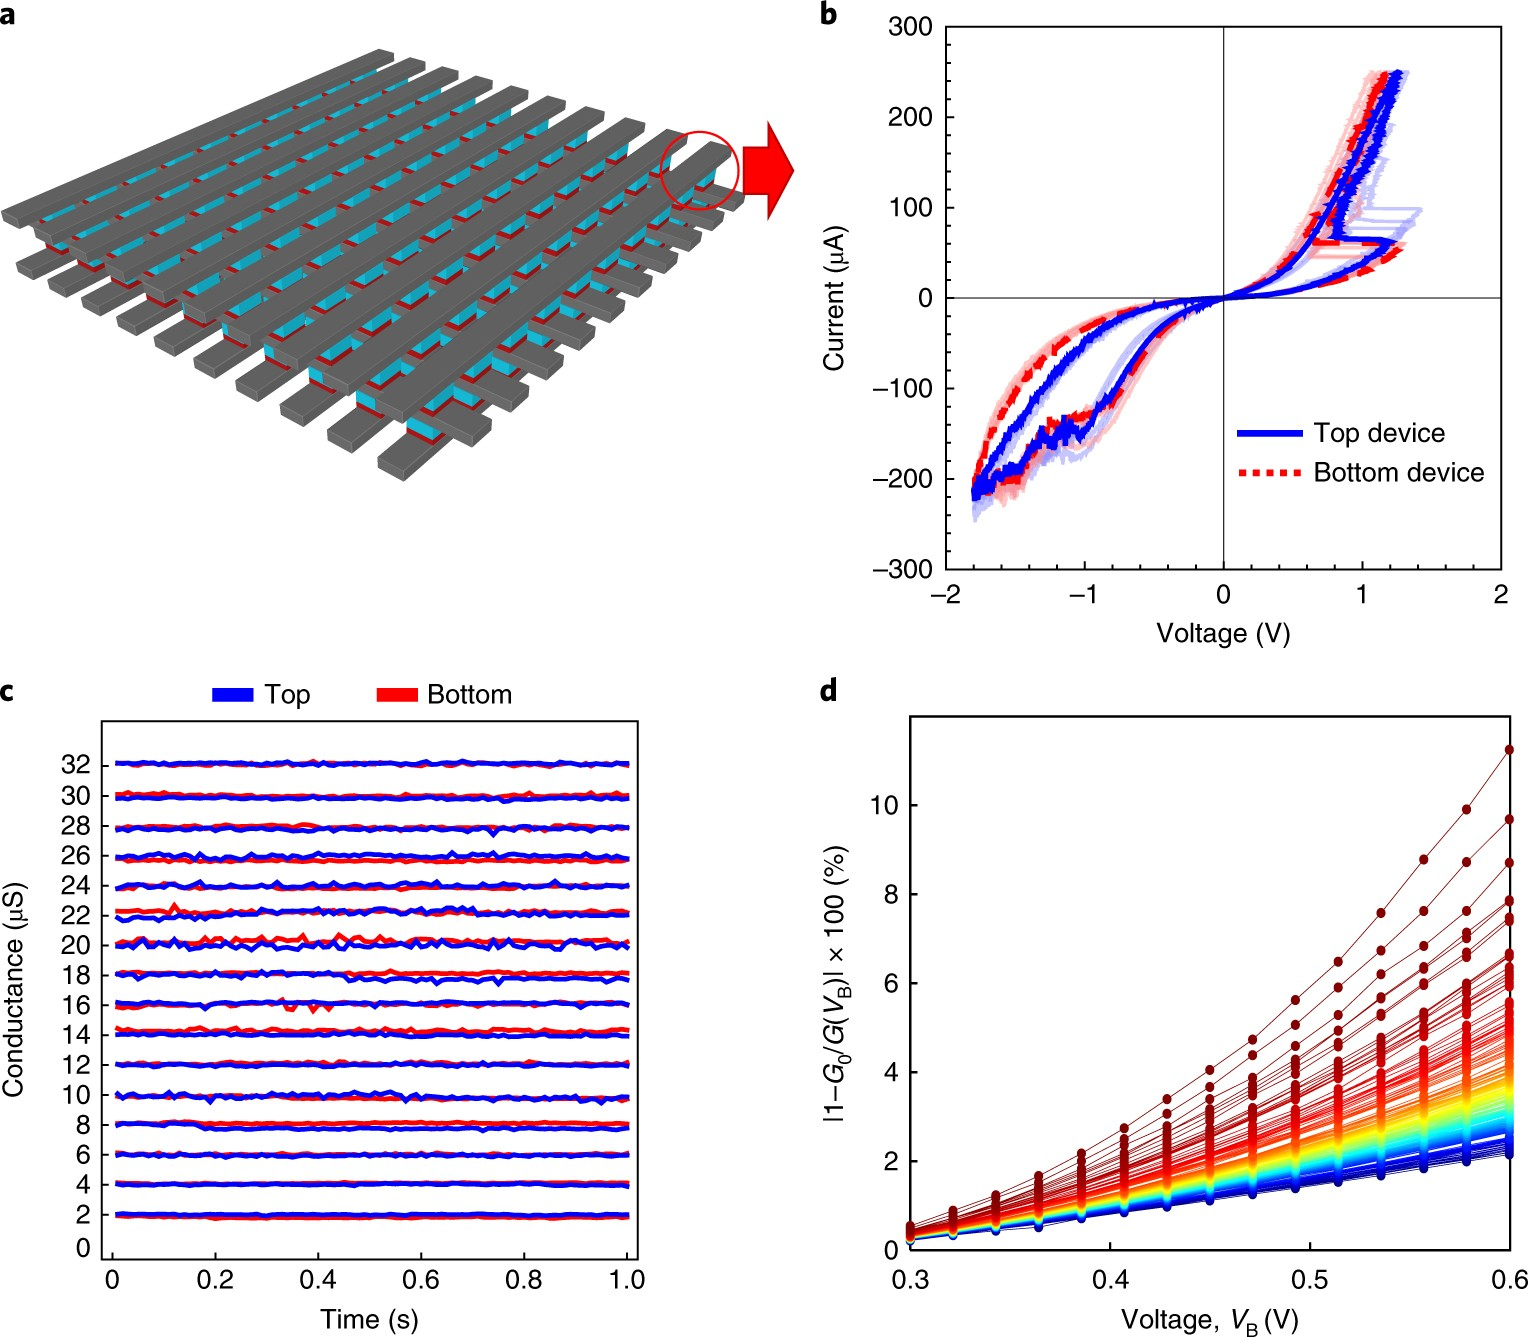 Hardware Intrinsic Security Primitives Enabled By Analogue State And Figure 318 Solving For Applied Voltage In A Series Circuit Nonlinear Conductance Variations Integrated Memristors Nature Electronics